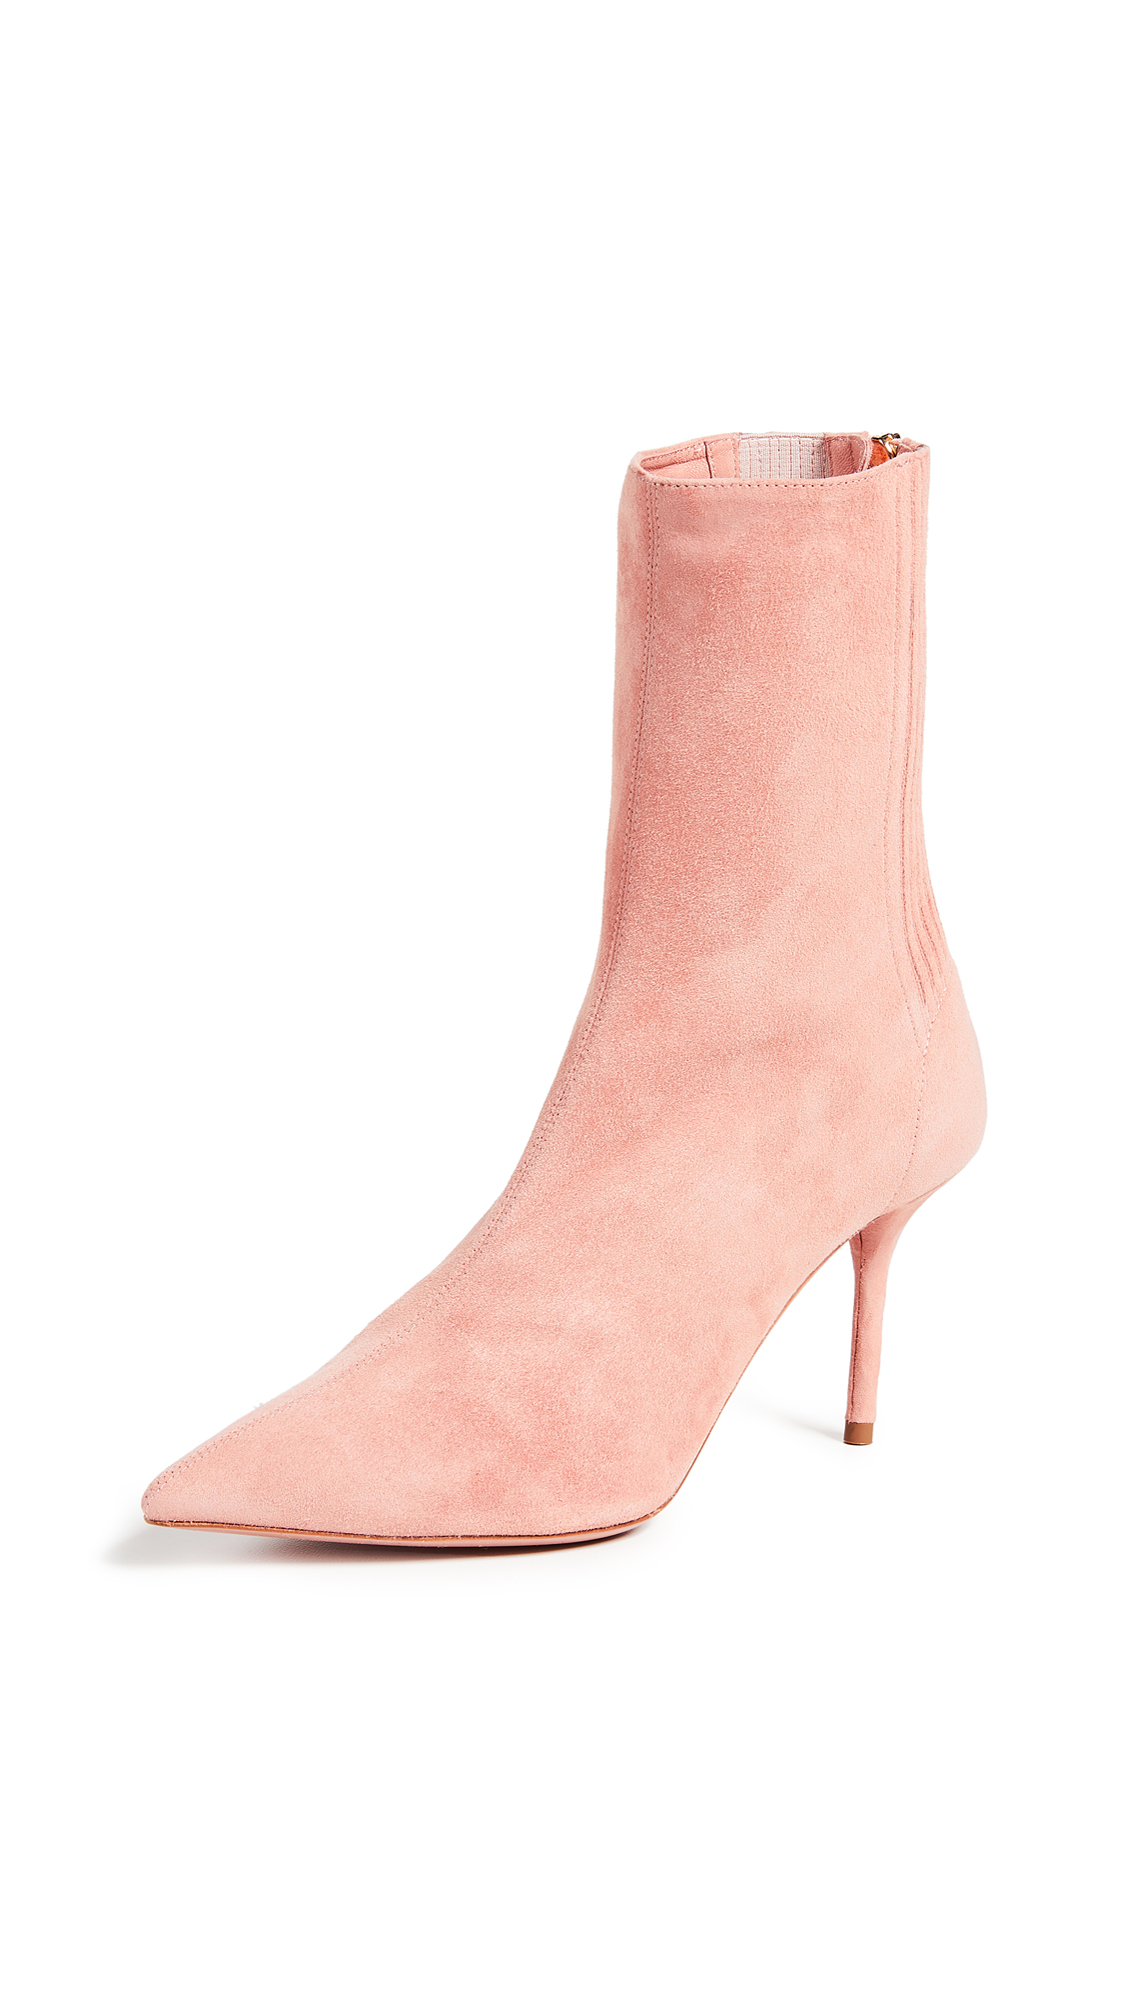 Aquazzura Saint Honore 85mm Booties - French Rose